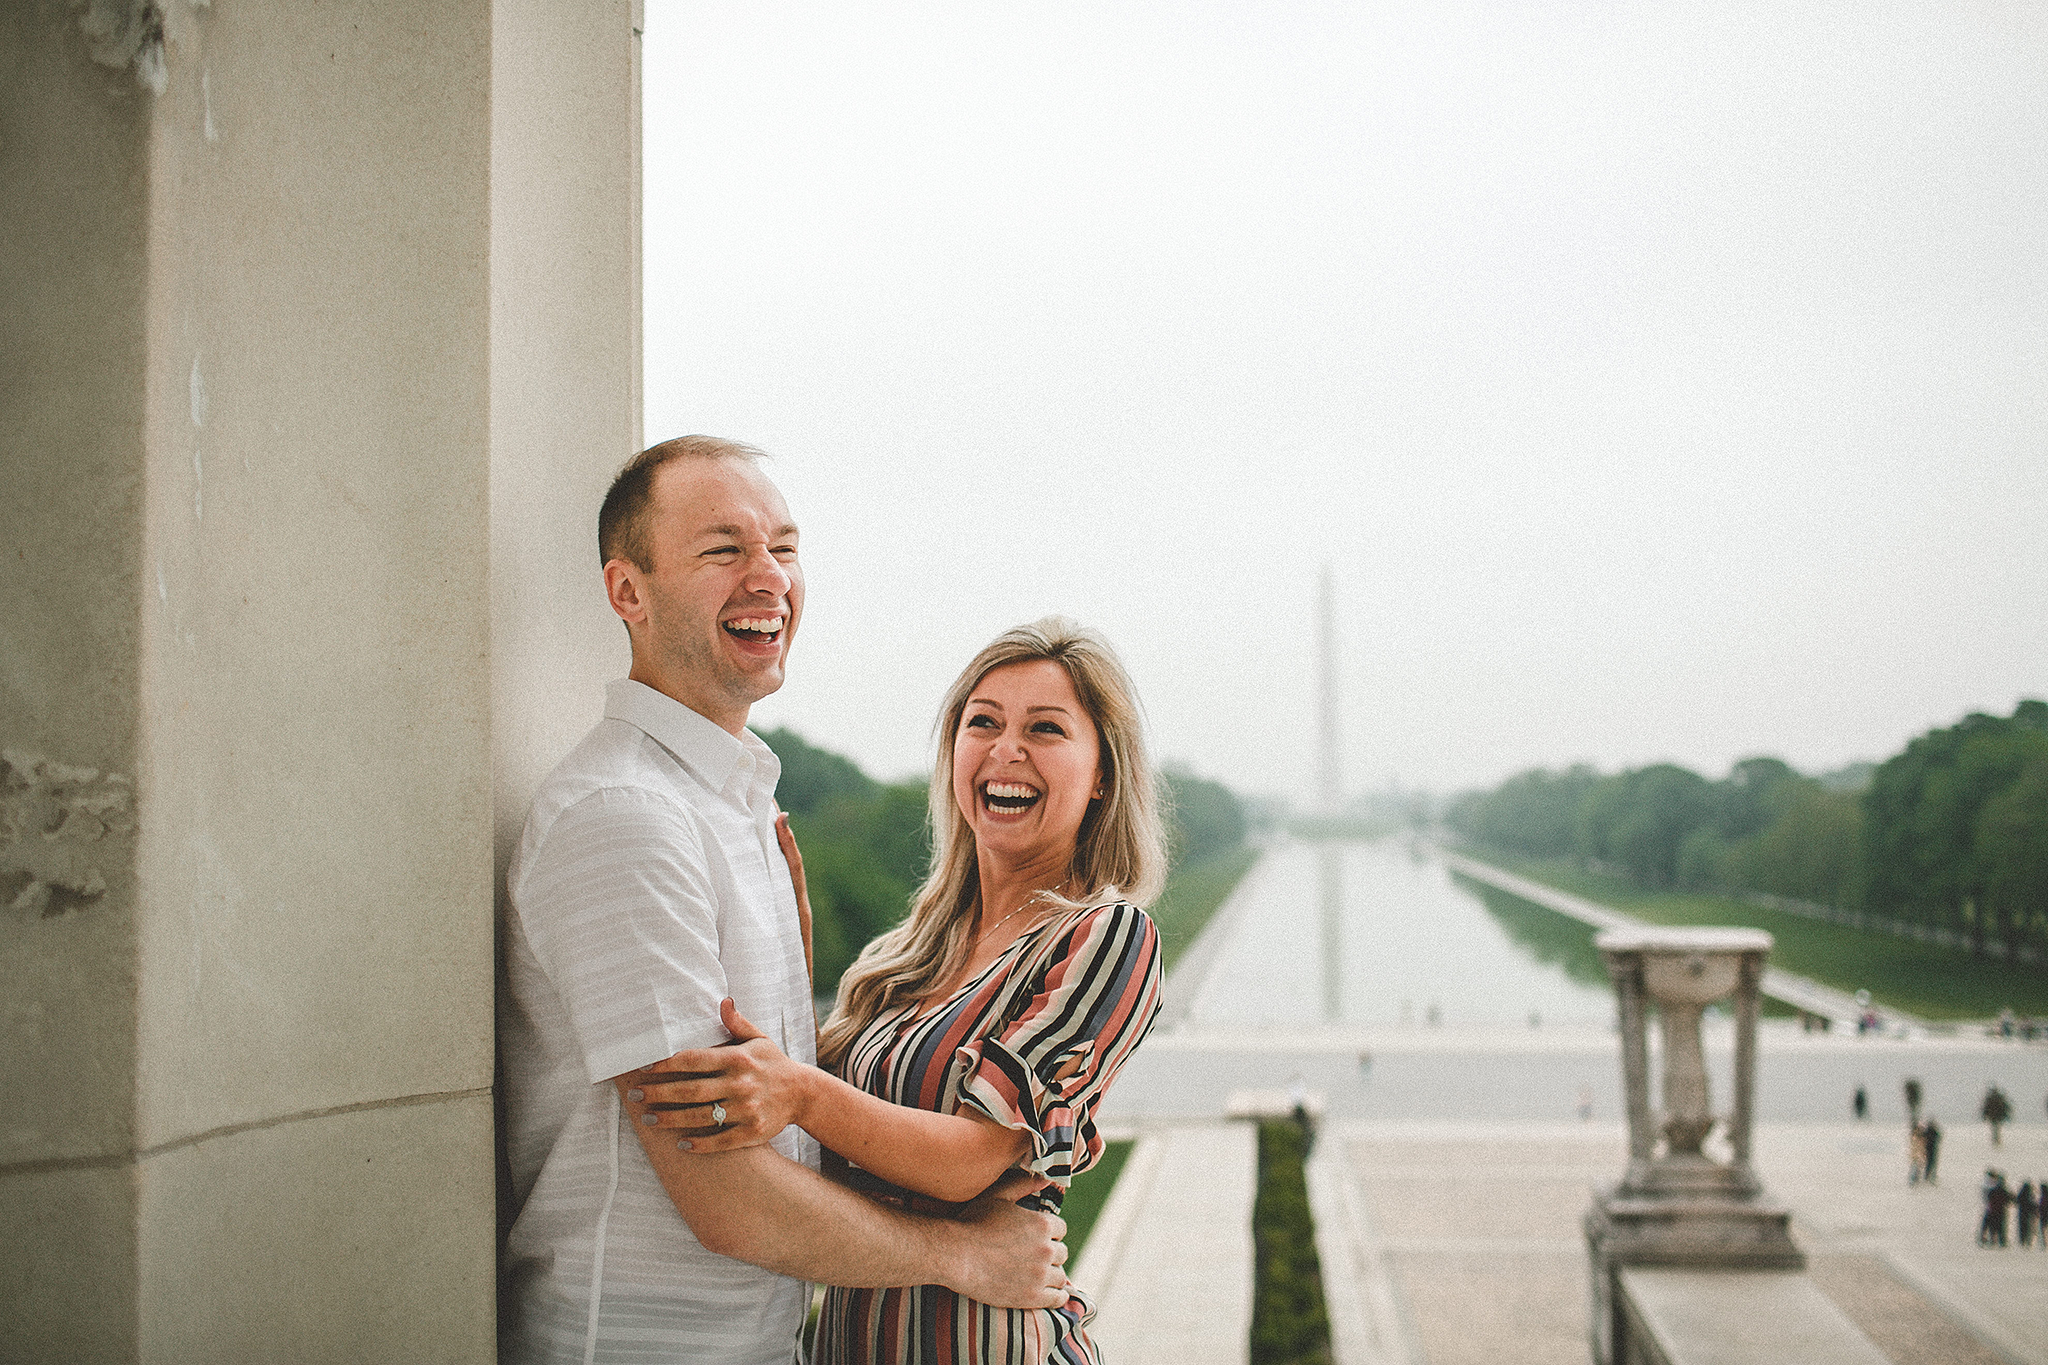 Washington DC engagement photos, Washington DC destination photos, engagement photo ideas, what to wear for engagement photos, engagement photo inspiration, destination engagement Elopement inspiration, Creative engagement photos, Unique engagement Photos, Washington monument engagement photos, sunrise engagement at Washington Monument, Lincoln memorial engagement photos, sunrise engagement photos at Lincoln Memorial, Washington DC spring engagement photos at Washington Monument